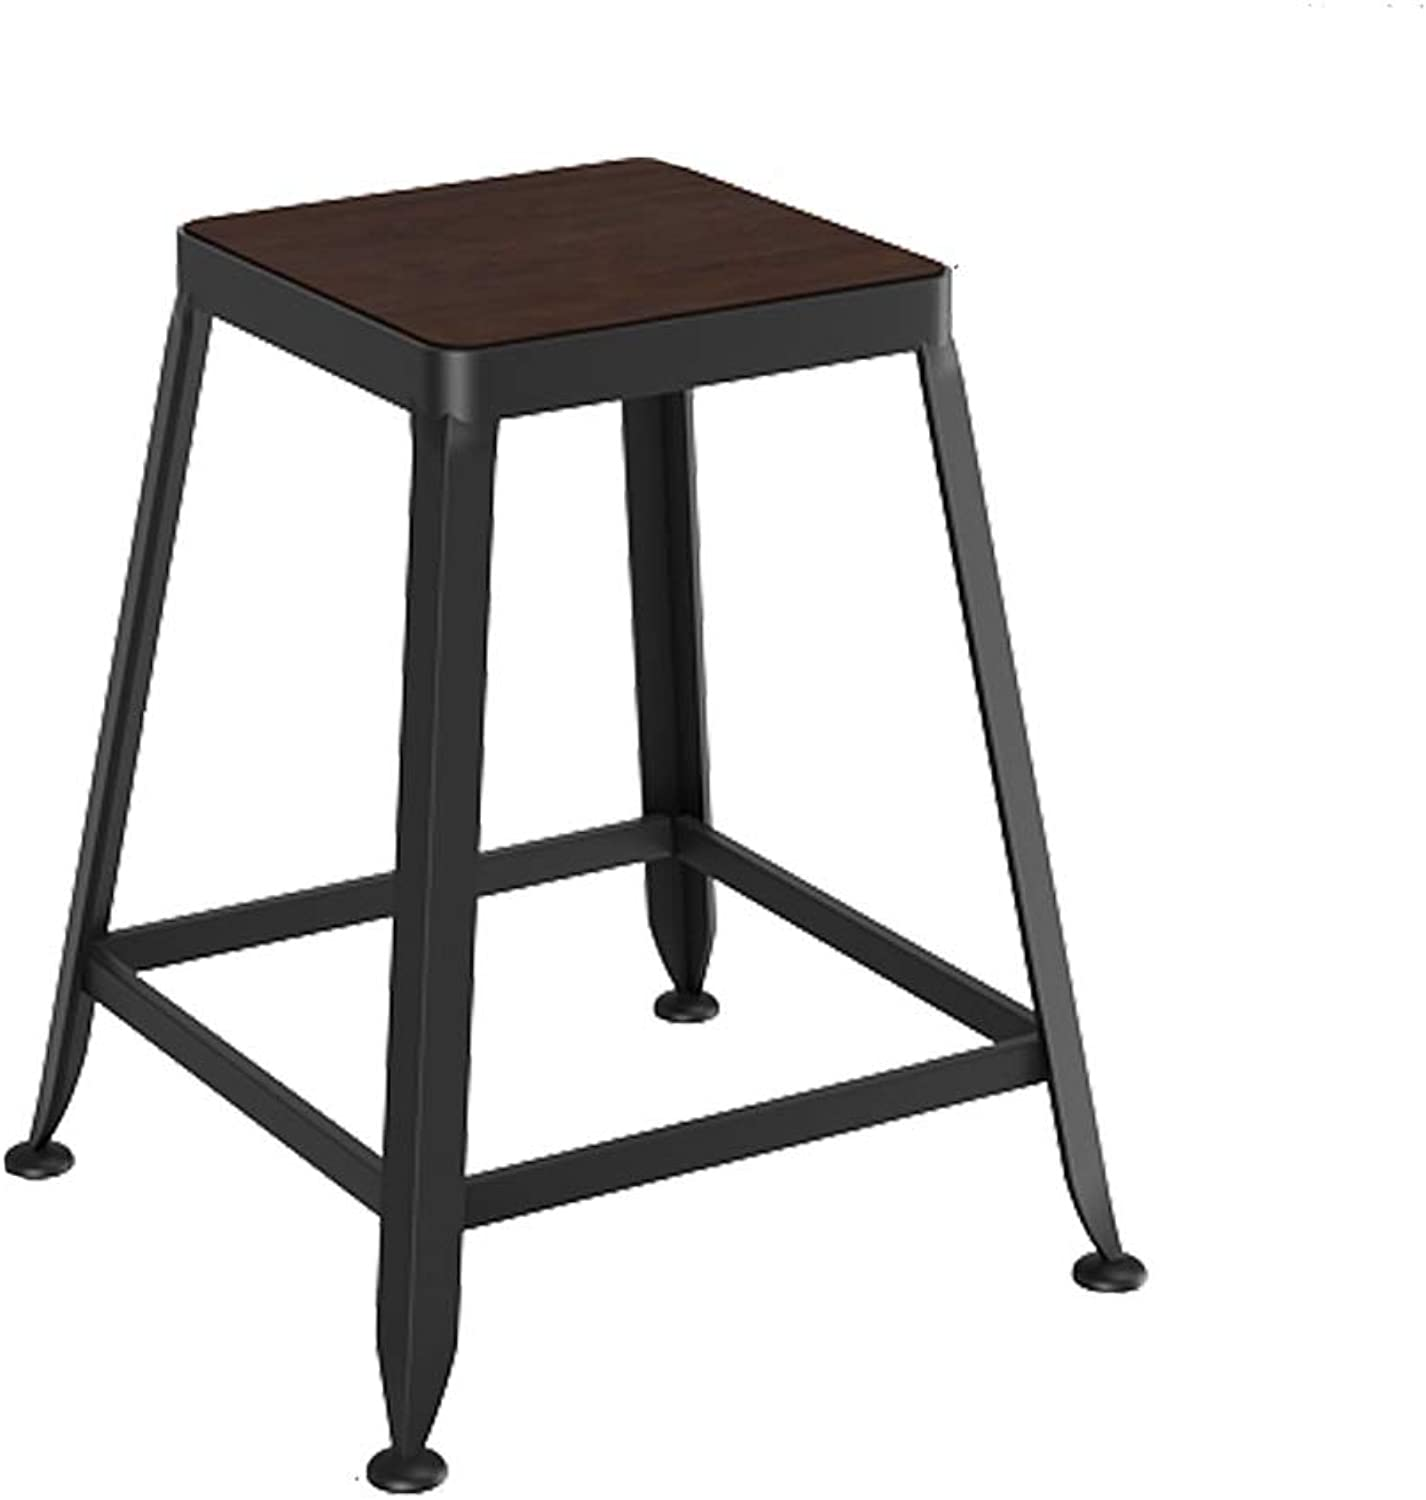 Bar Backrest Chair Industrial Retro Solid Wood Seat Simple Design Metal High Leg Stool for Cafe Counter Sturdy 0522A (color   No backrest, Size   45cm high)